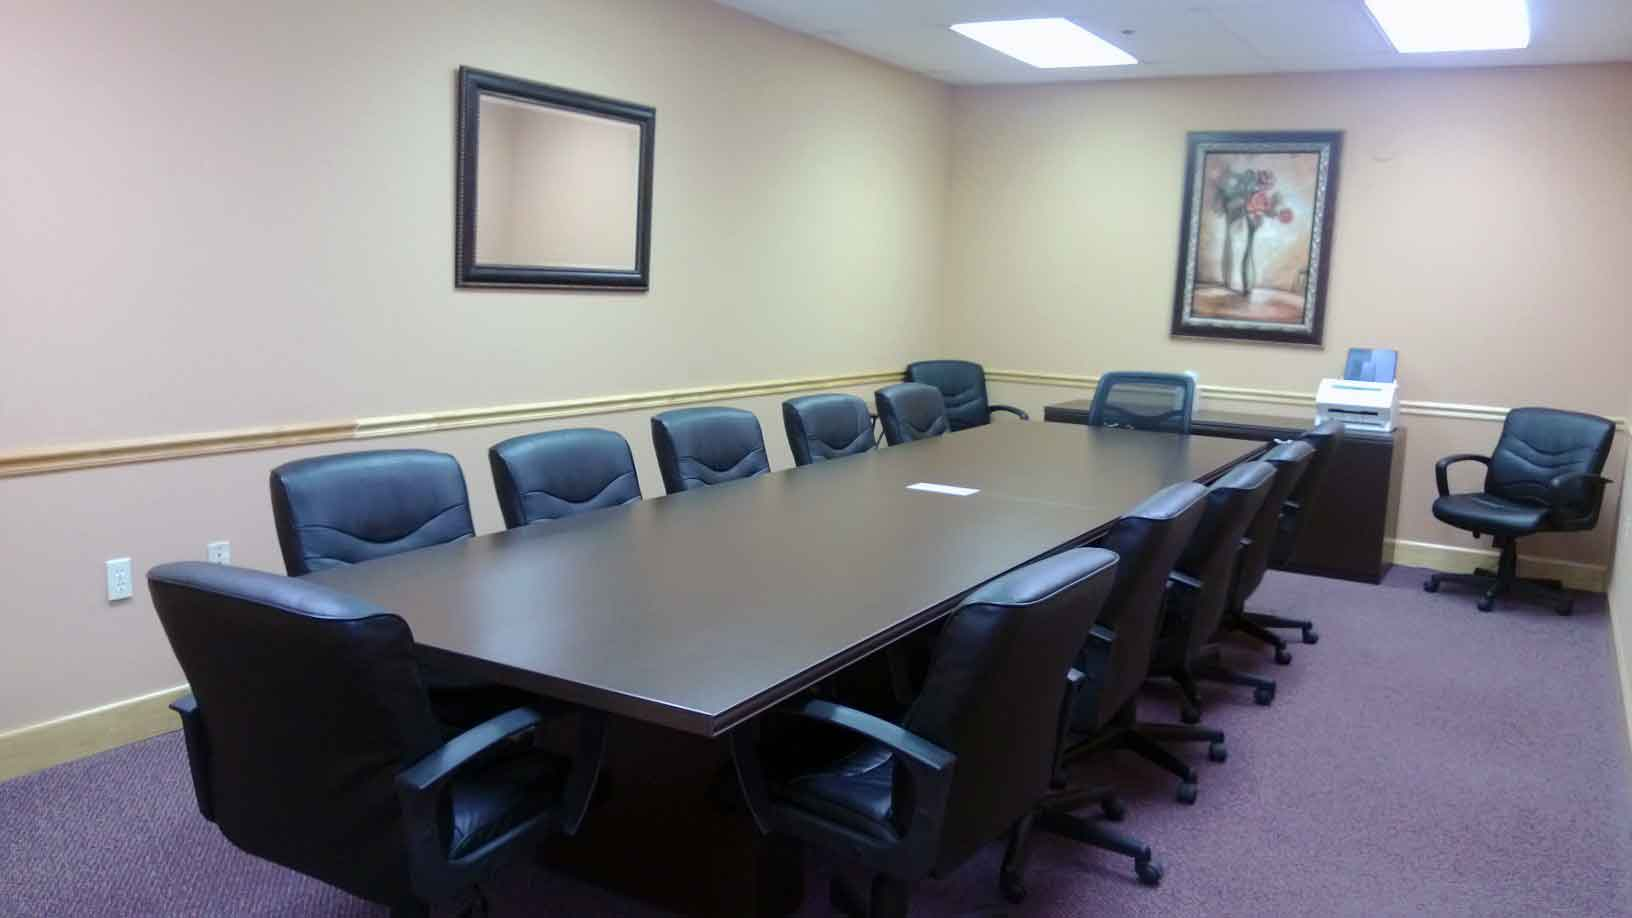 Meeting Rooms, Conference Room Rentals, Saratoga, Malta, NY